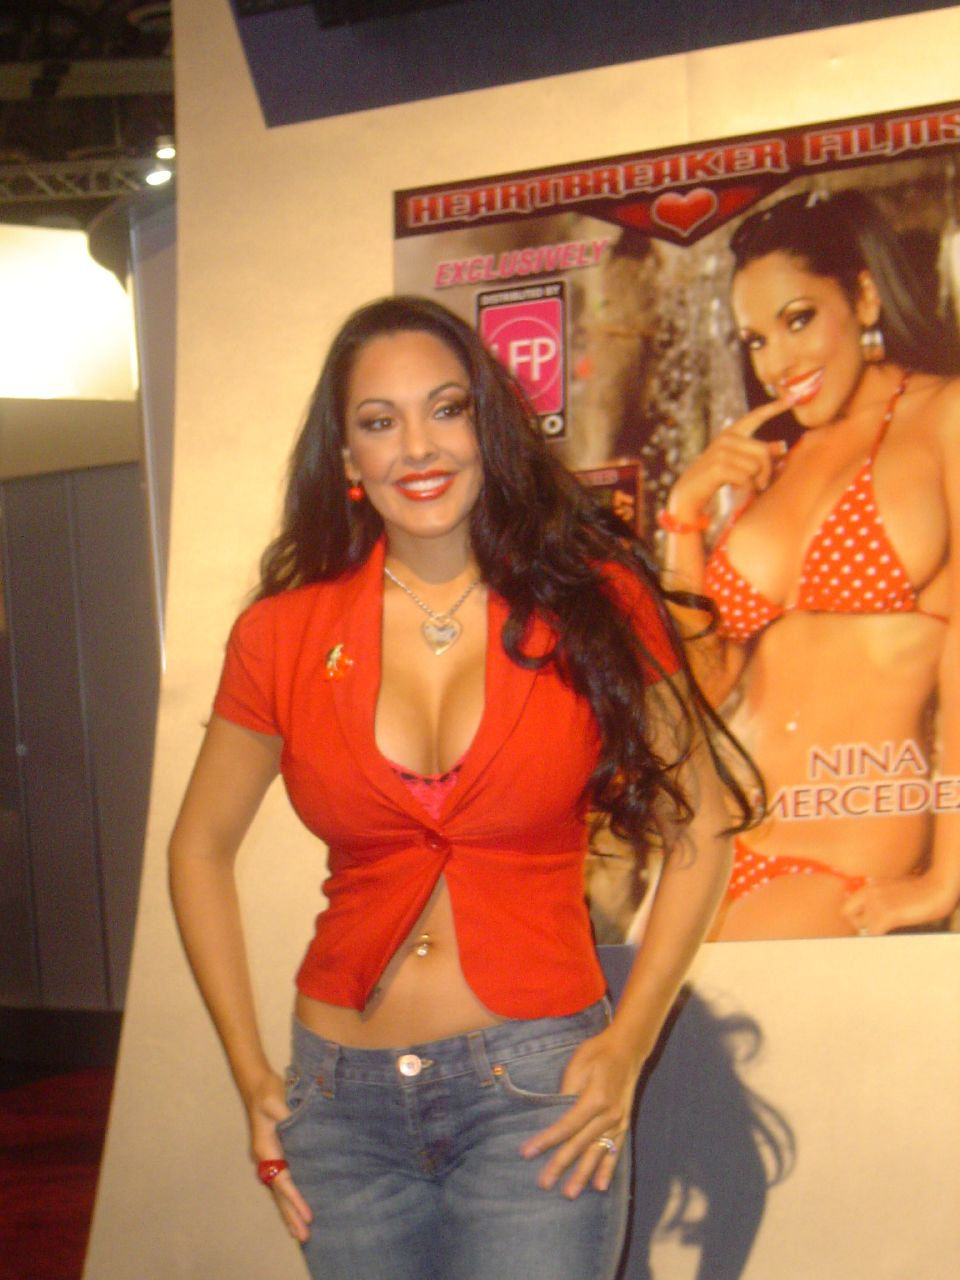 Nina Mercedez S Blog